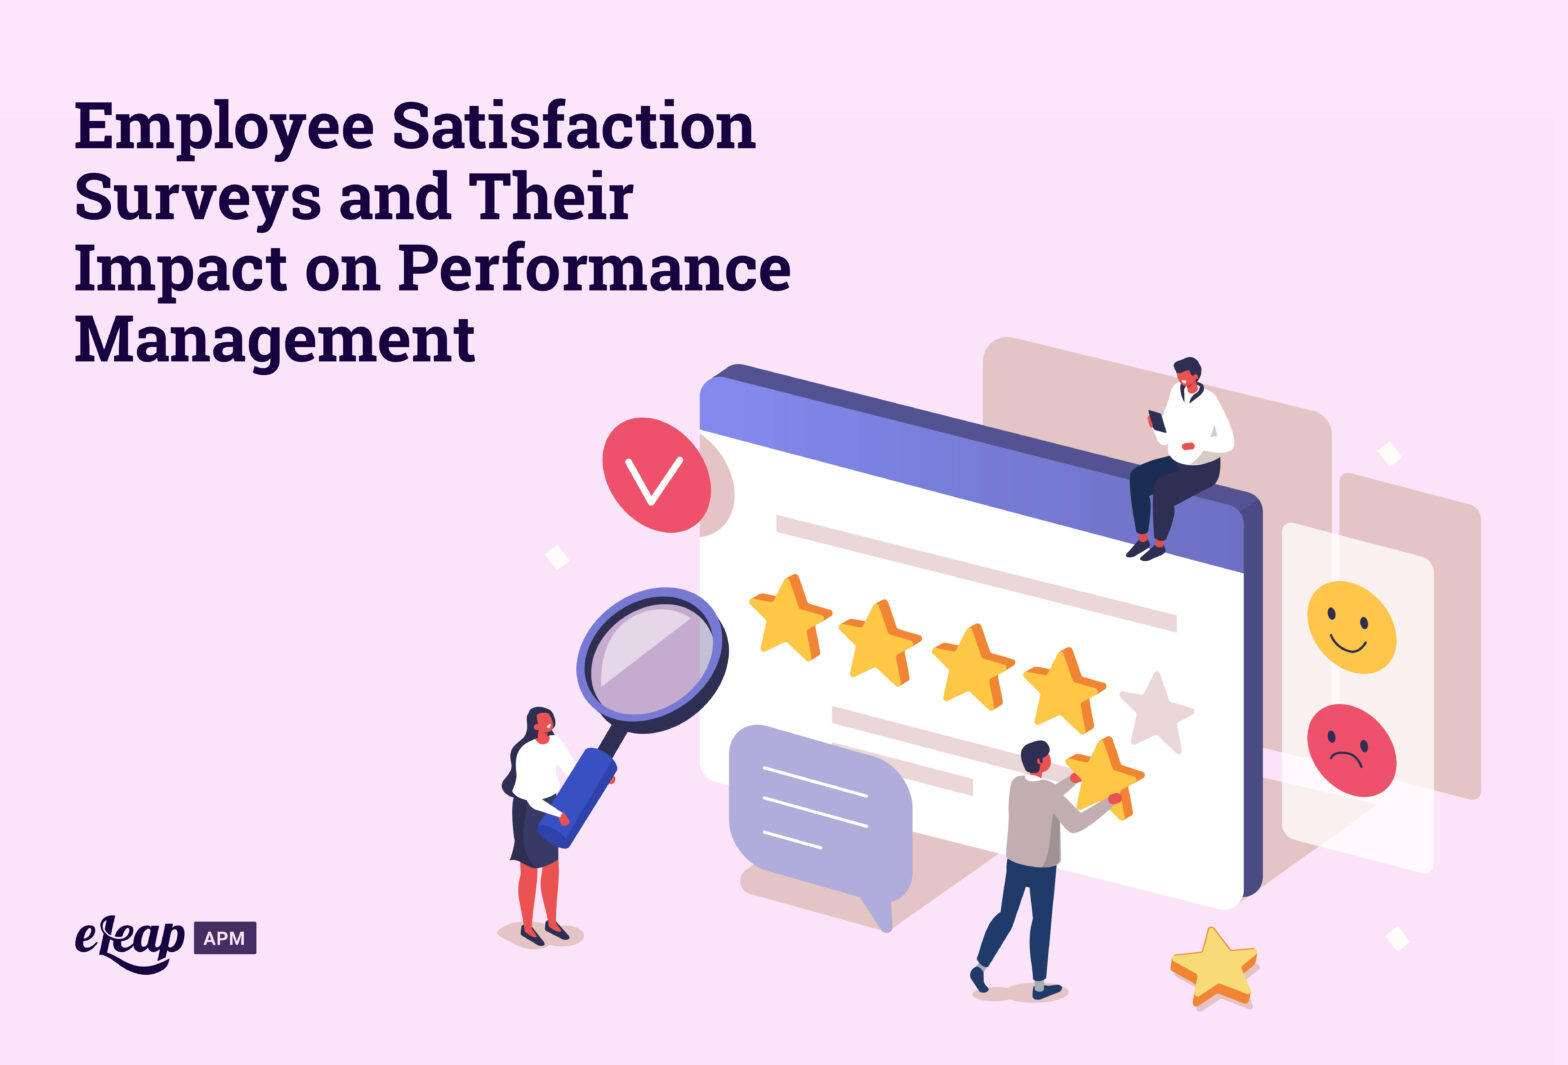 Employee Satisfaction Surveys and Their Impact on Performance Management